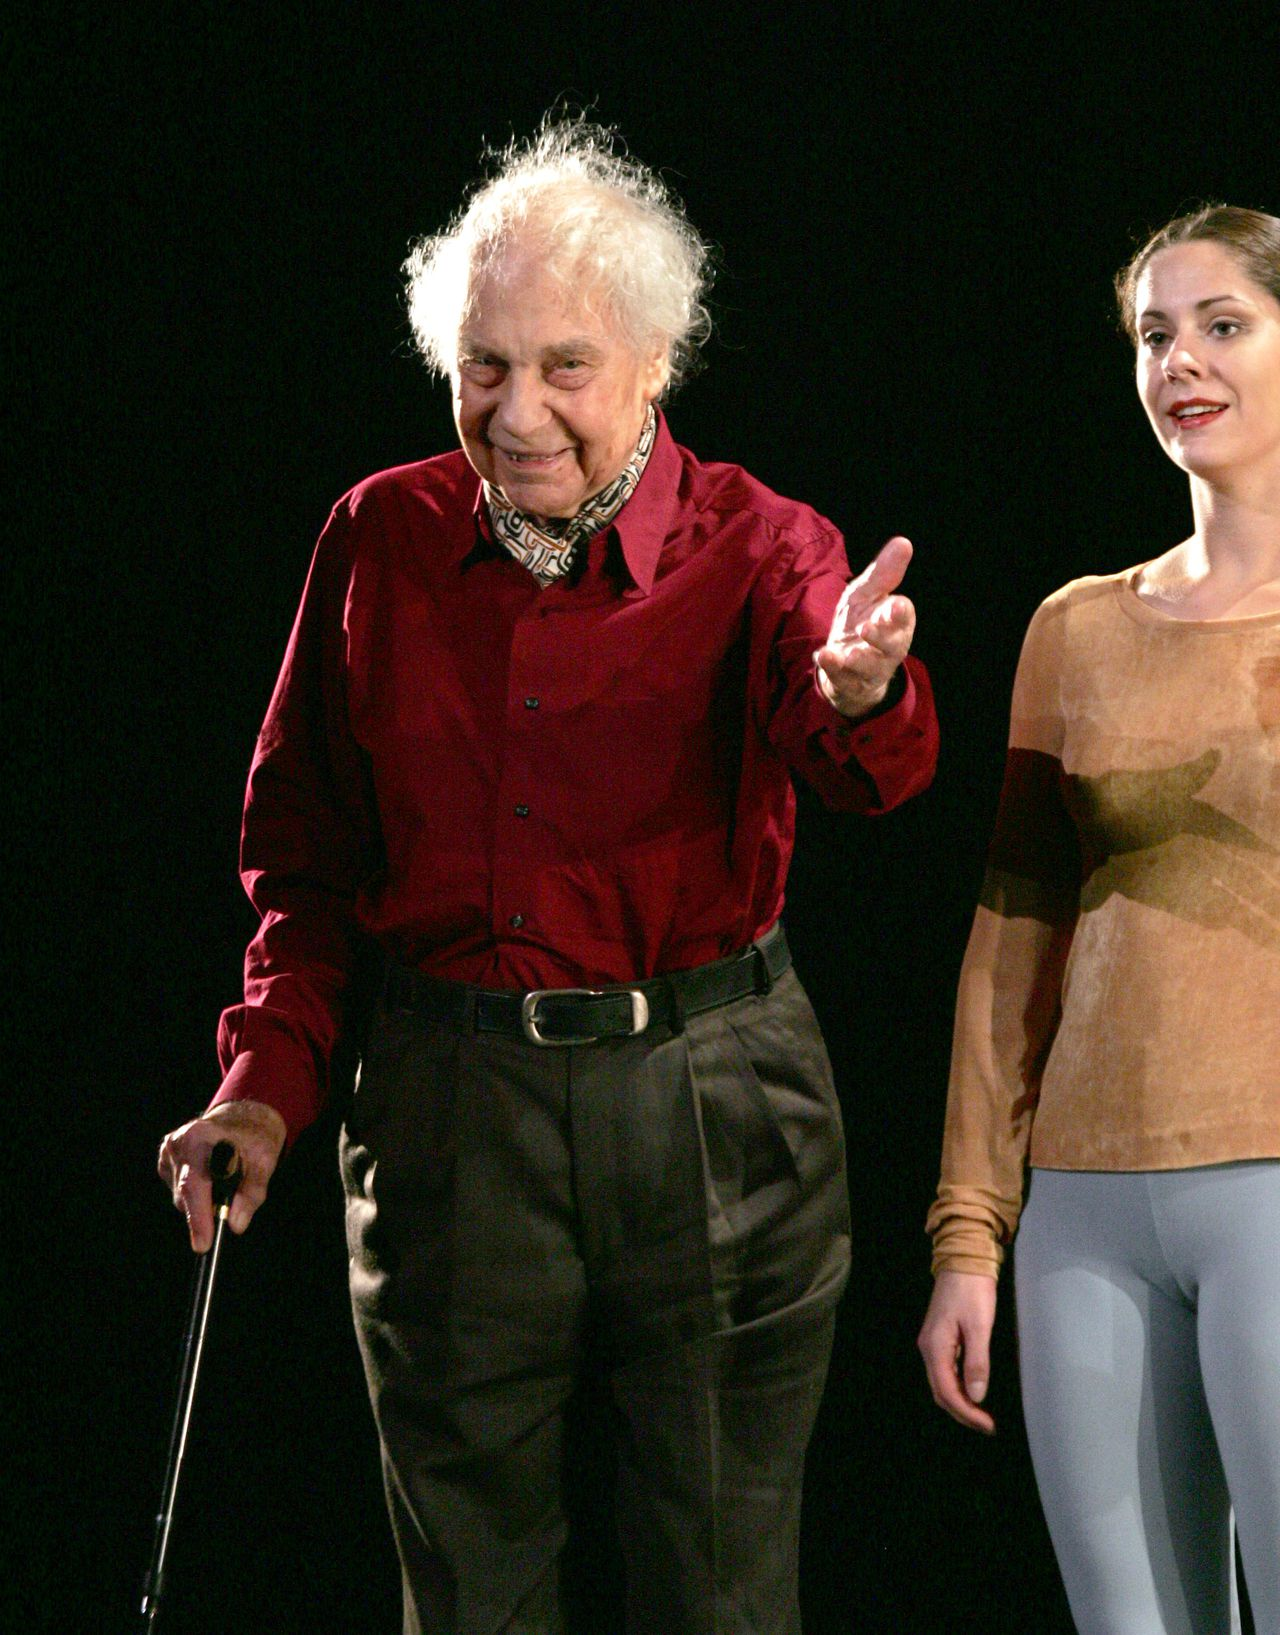 """Cunningham in 2005 op het podium van de Opera in Parijs. Foto AFP (FILES) US choreographer Merce Cunningham salutes the crowd on stage after the presentation of his latest show at Paris' Opera in this January 6, 2005 file photo including a new contemporary dance choreography called """"Views on stage"""". Merce Cunningham, the legendary New York-based choreographer who revolutionized modern dance, has died at age 90, his foundation said July 27, 2009. """"It is with great sorrow that we note the passing of Merce Cunningham, who died peacefully in his home last night of natural causes,"""" the Cunningham Dance Foundation and the Merce Cunningham Dance Company said in a statement. AFP PHOTO/GABRIEL BOUYS"""